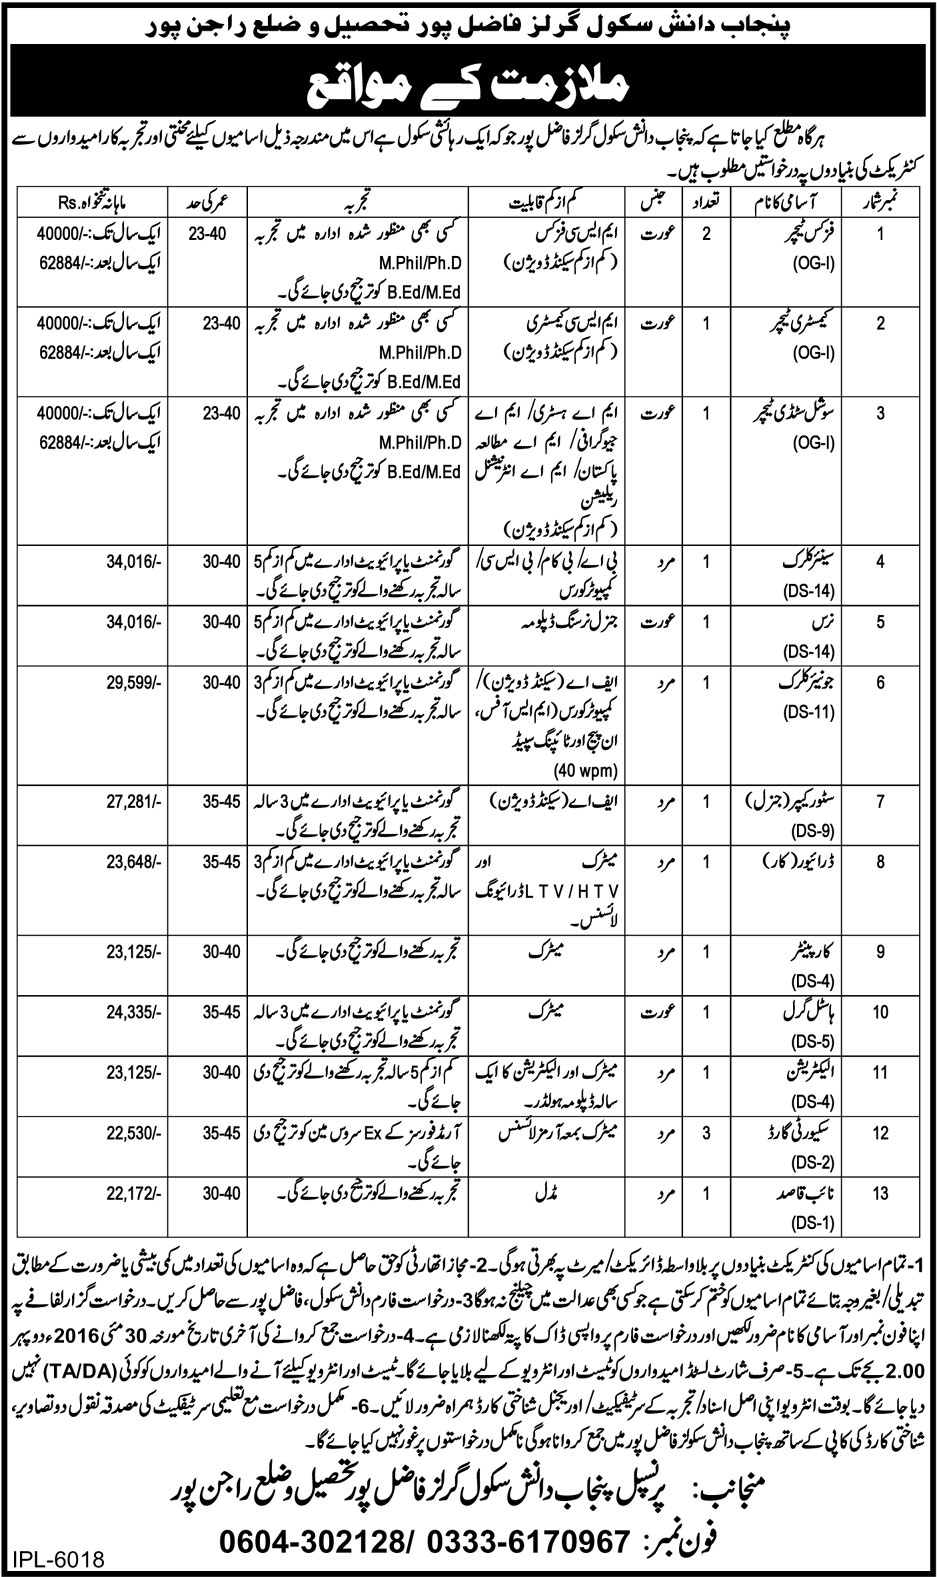 Female Teachers Admin Staff Jobs In Daanish School For Girls Fazilpur Government Jobs Private Jobs In Pakistan 2018